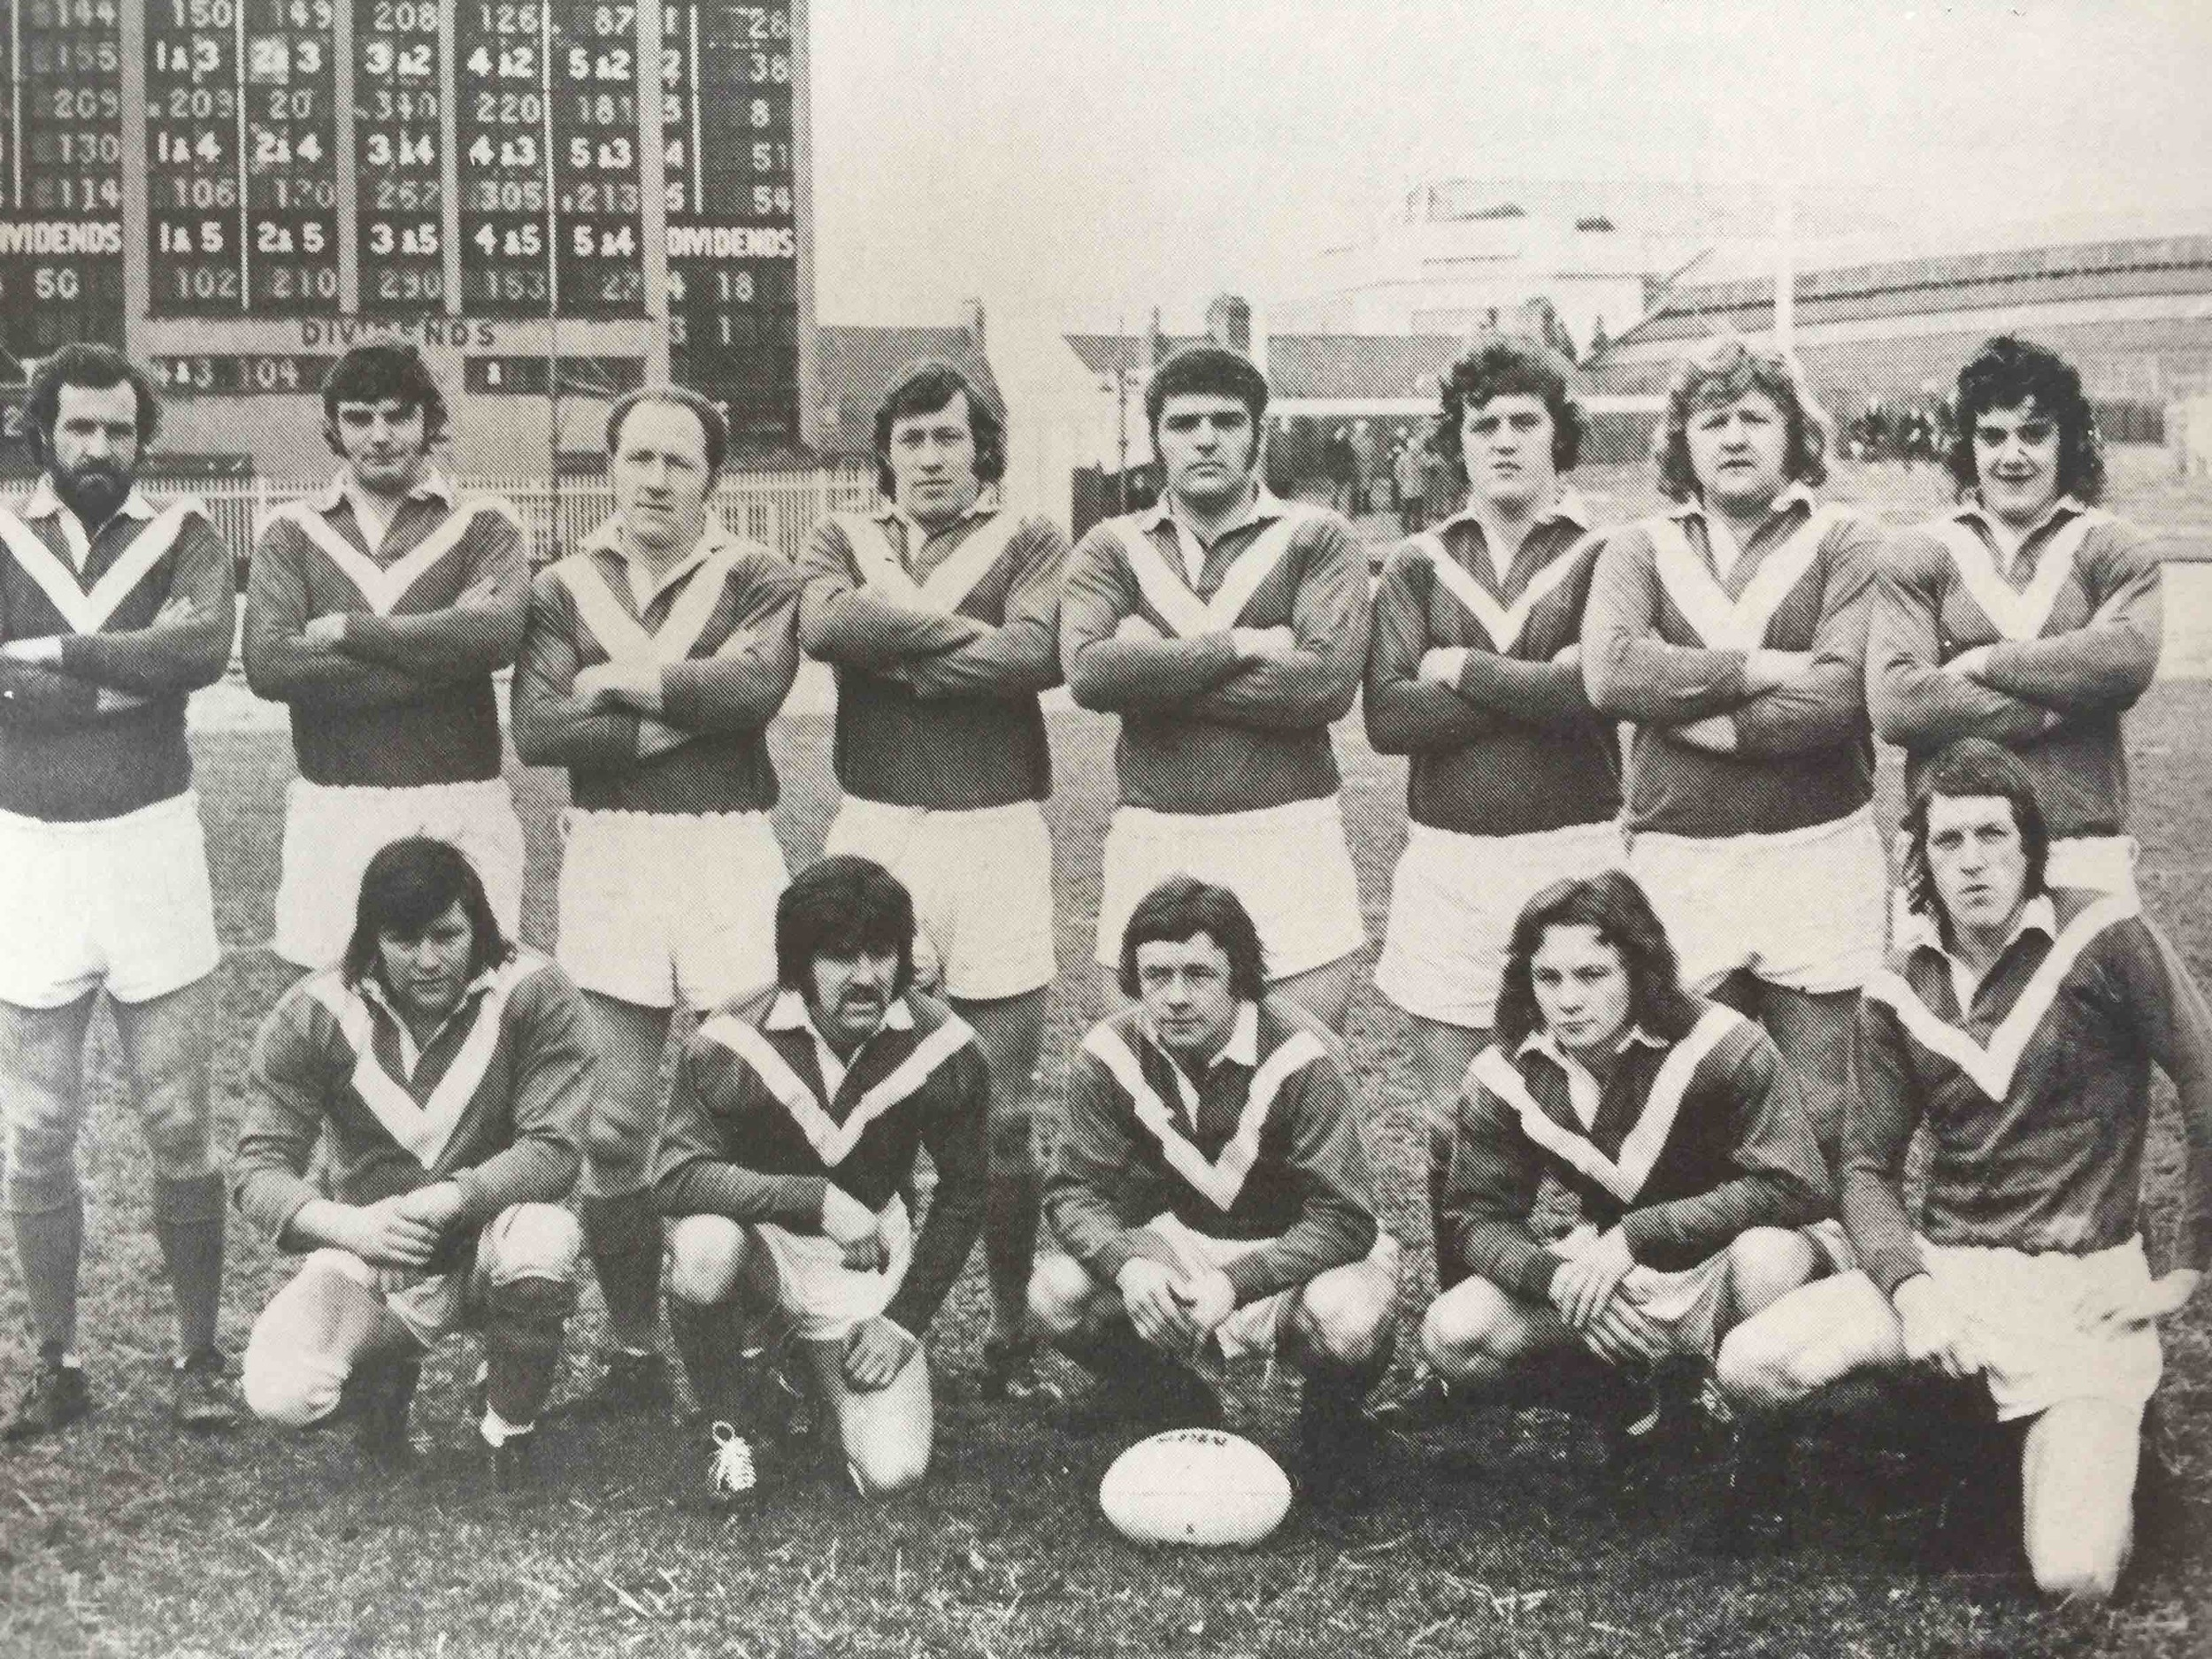 Roger Millward, with ball, captains the 1973-74 Hull KR side.